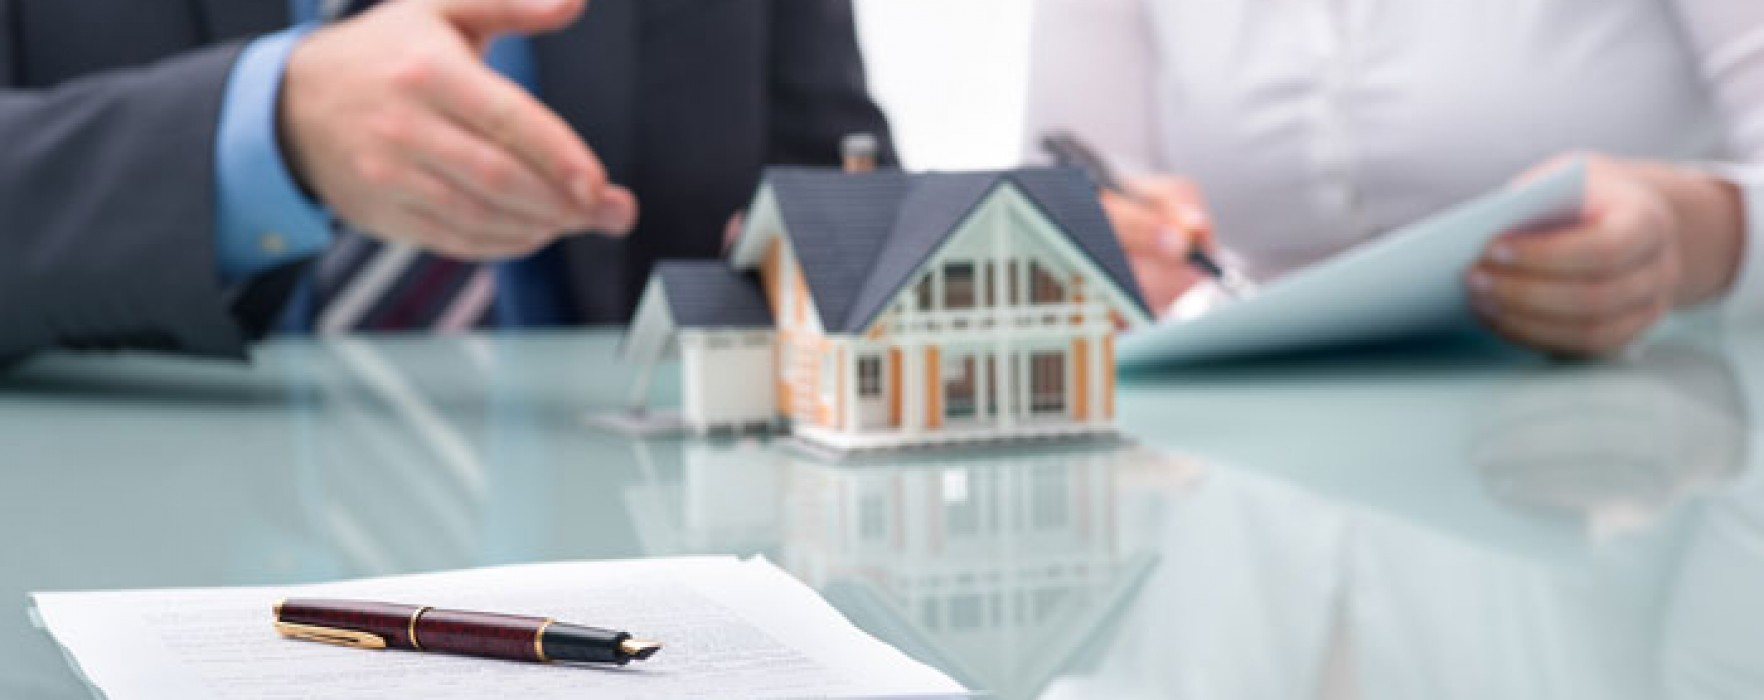 Making an Offer on a House in a Seller's Market